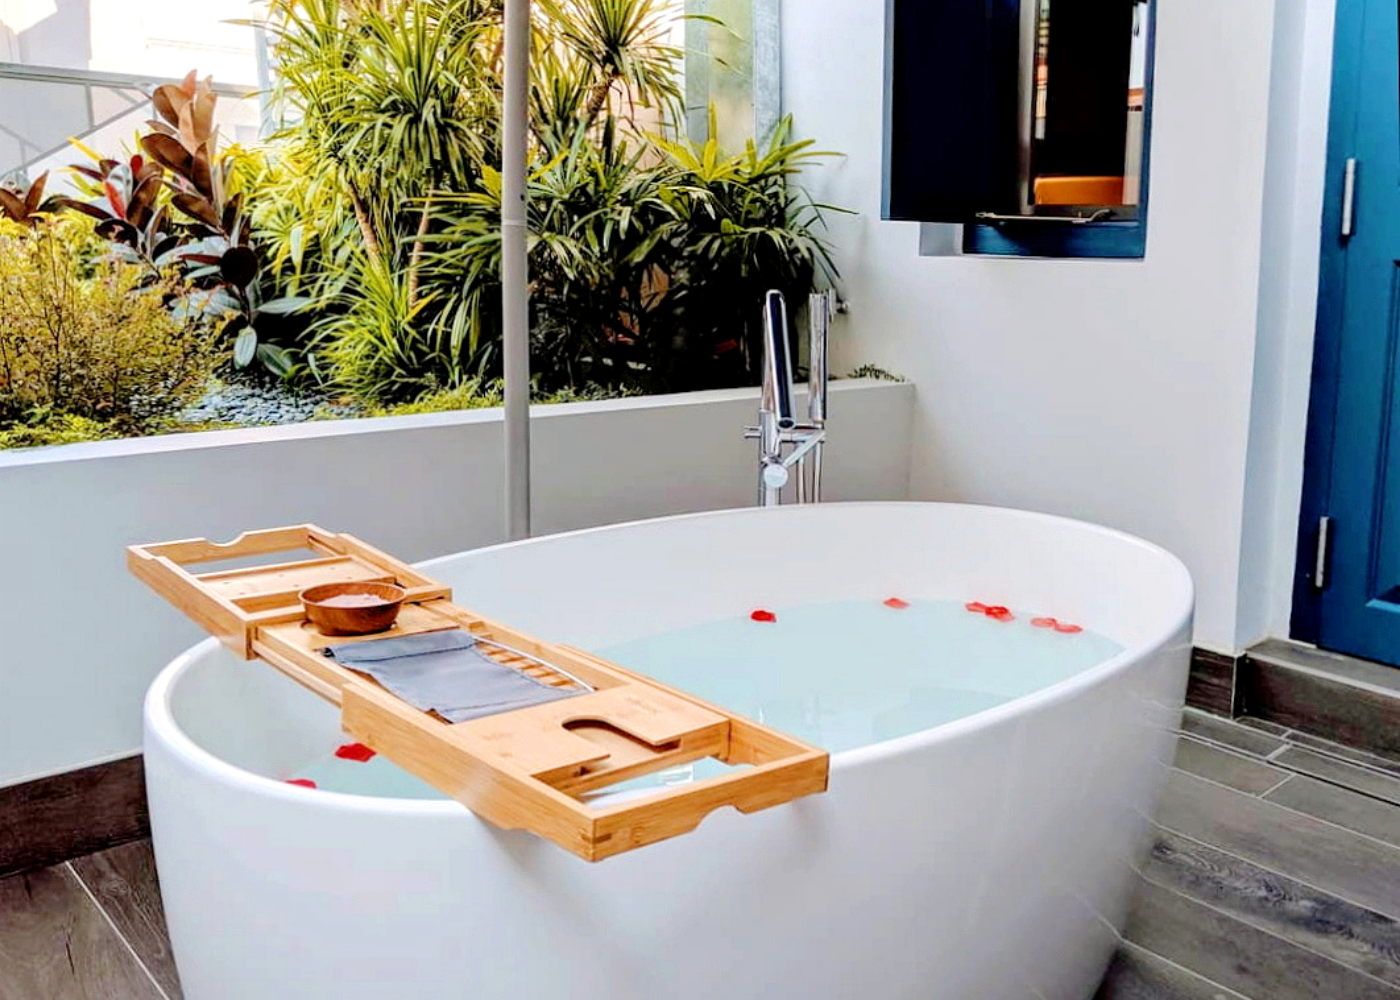 Perks of booking the Outdoor Suite: This outdoor bathtub. Photography: Amelia Ang